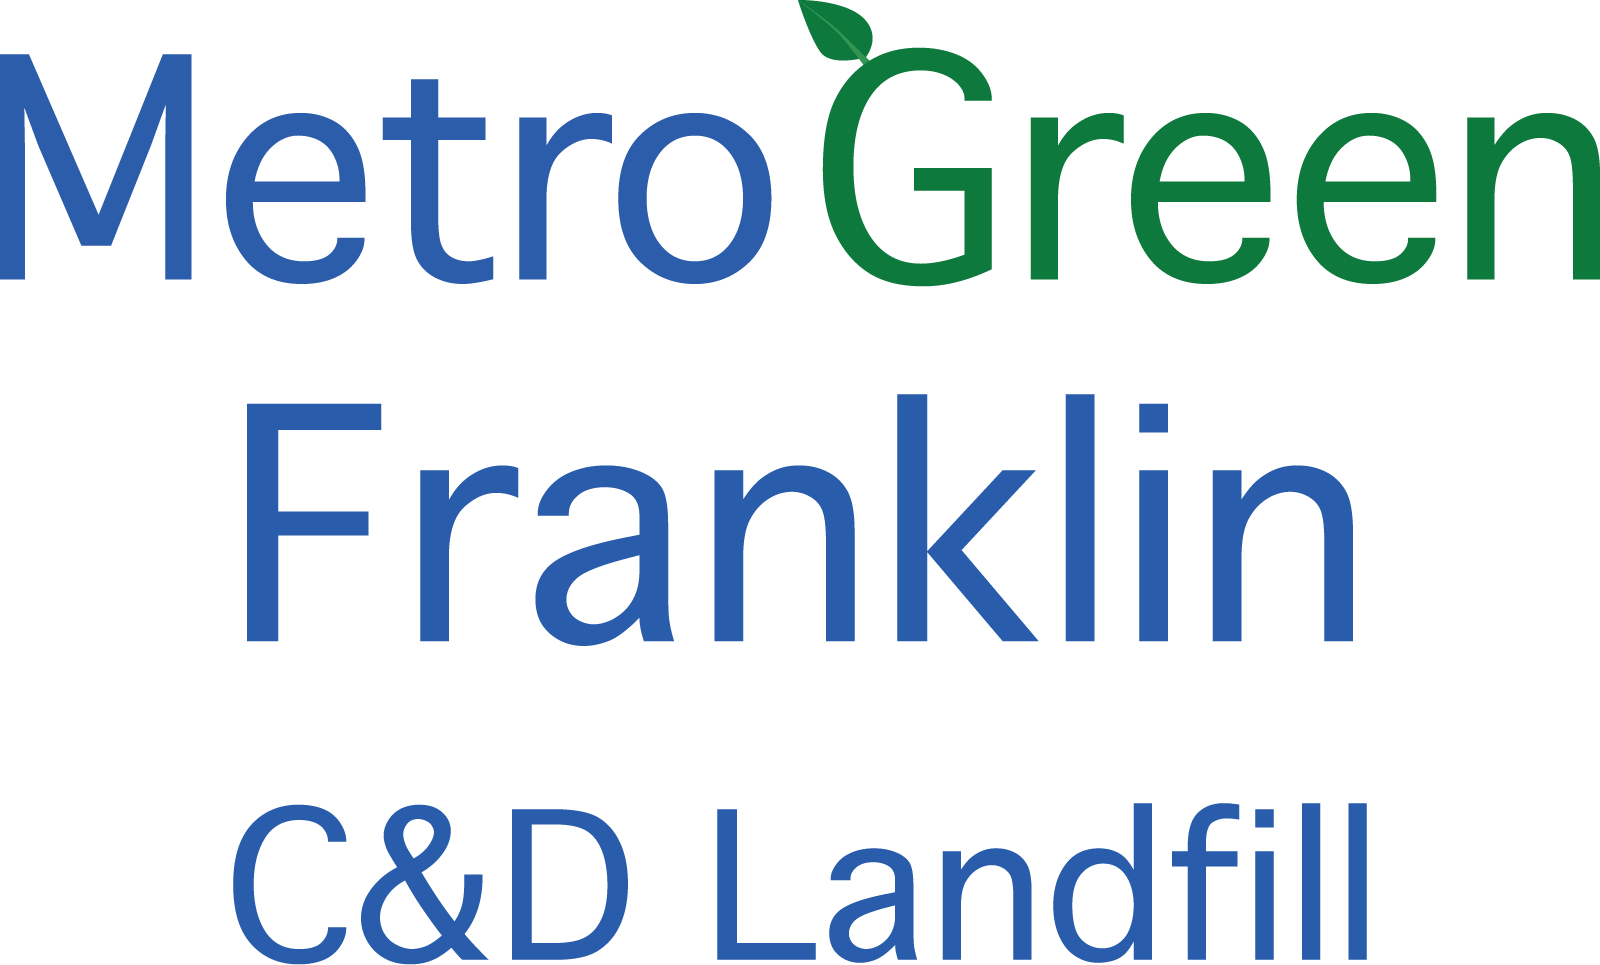 Metro Green Recycling